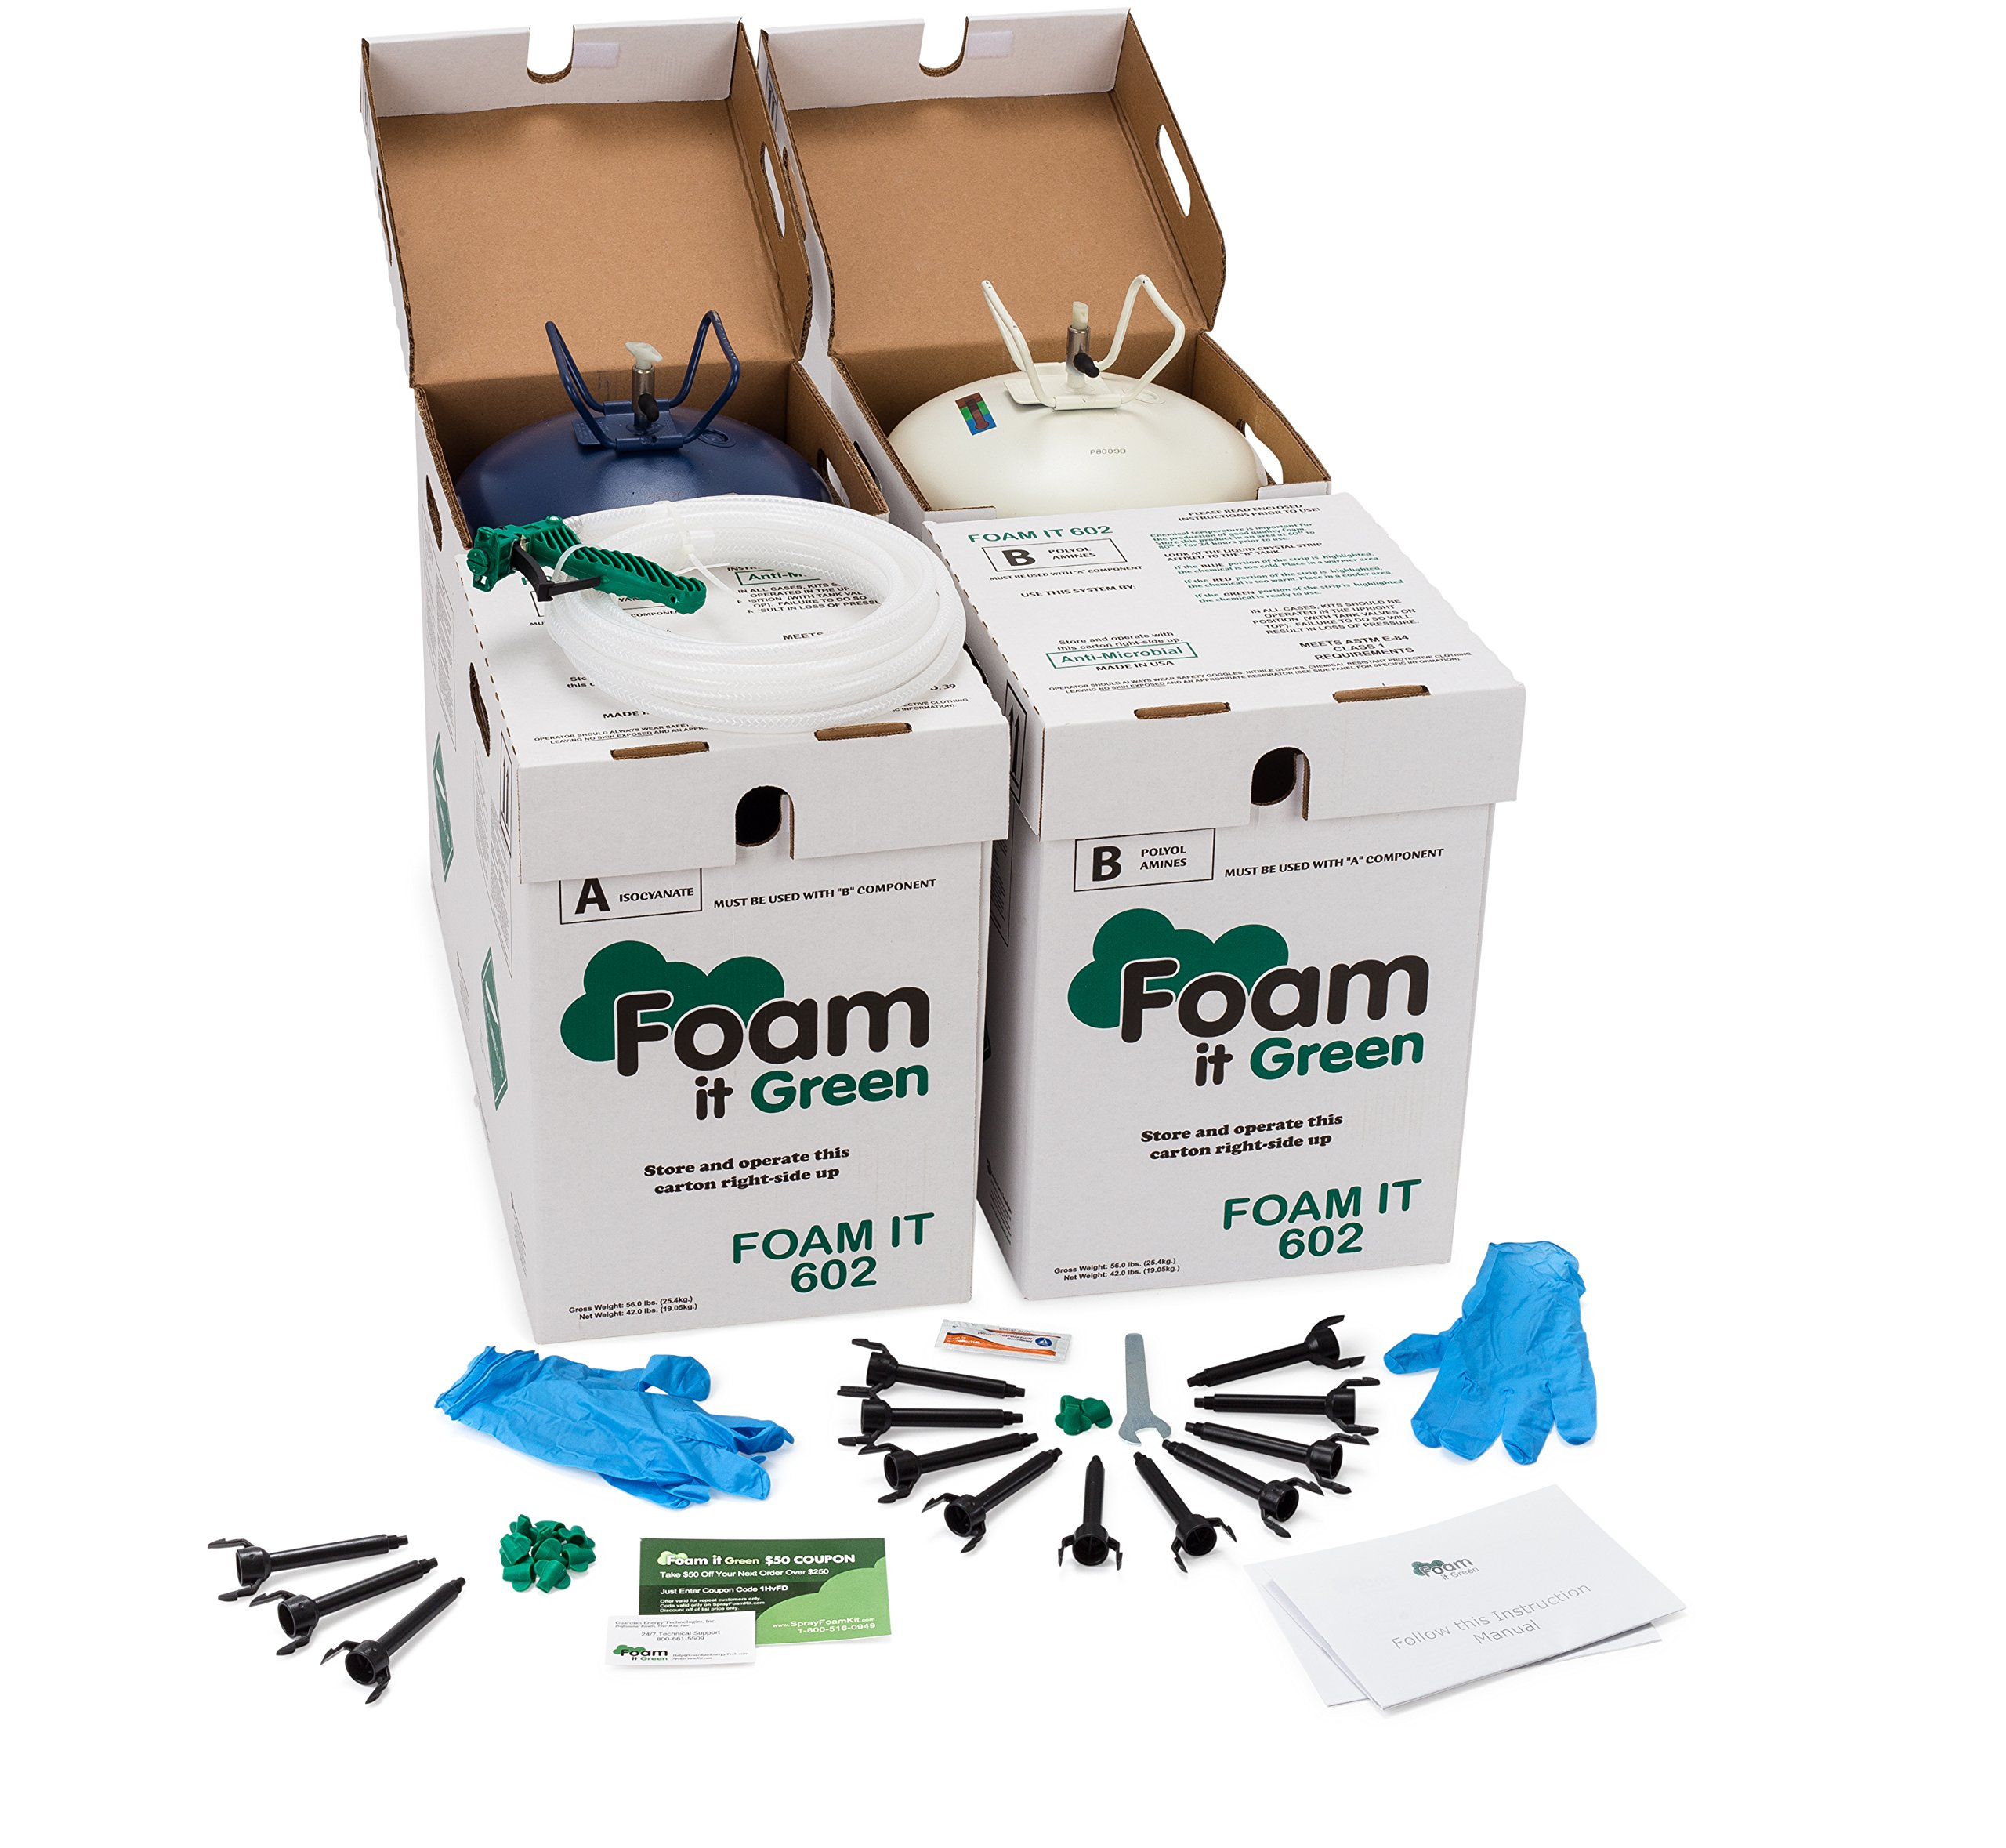 Energy Efficient Home Insulation Kit by Foam It Green